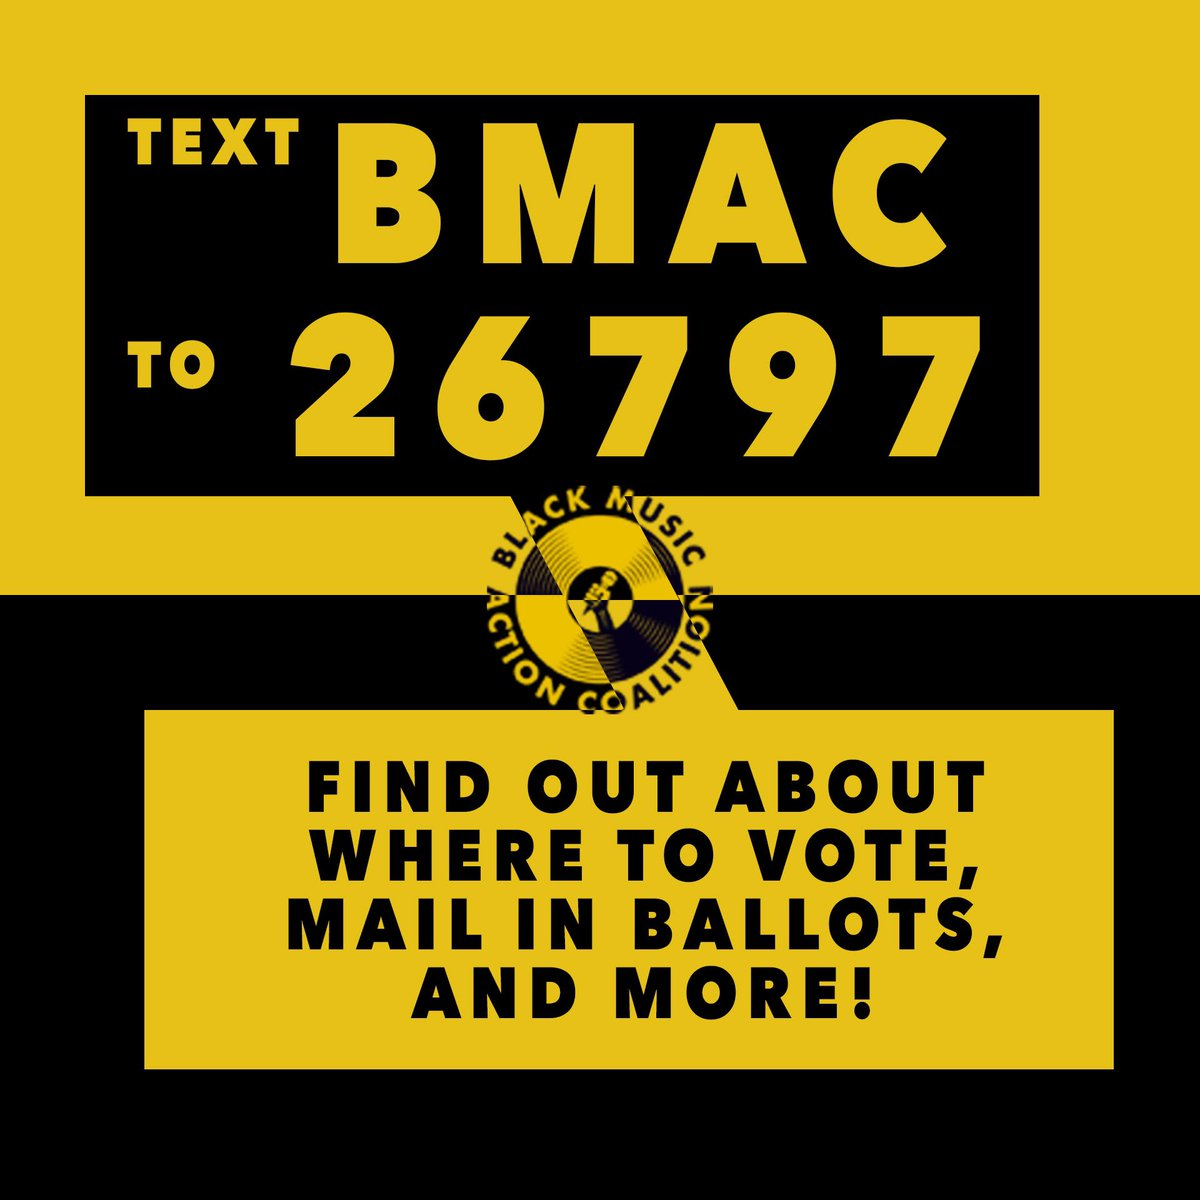 """Text """"BMAC"""" to 26797 to get all Your information about Where/How to Vote. #WeHaveThePower #BePartOfTheChange #BlackVotesMatter #BlackLivesMatter #BlackMusicMatters"""